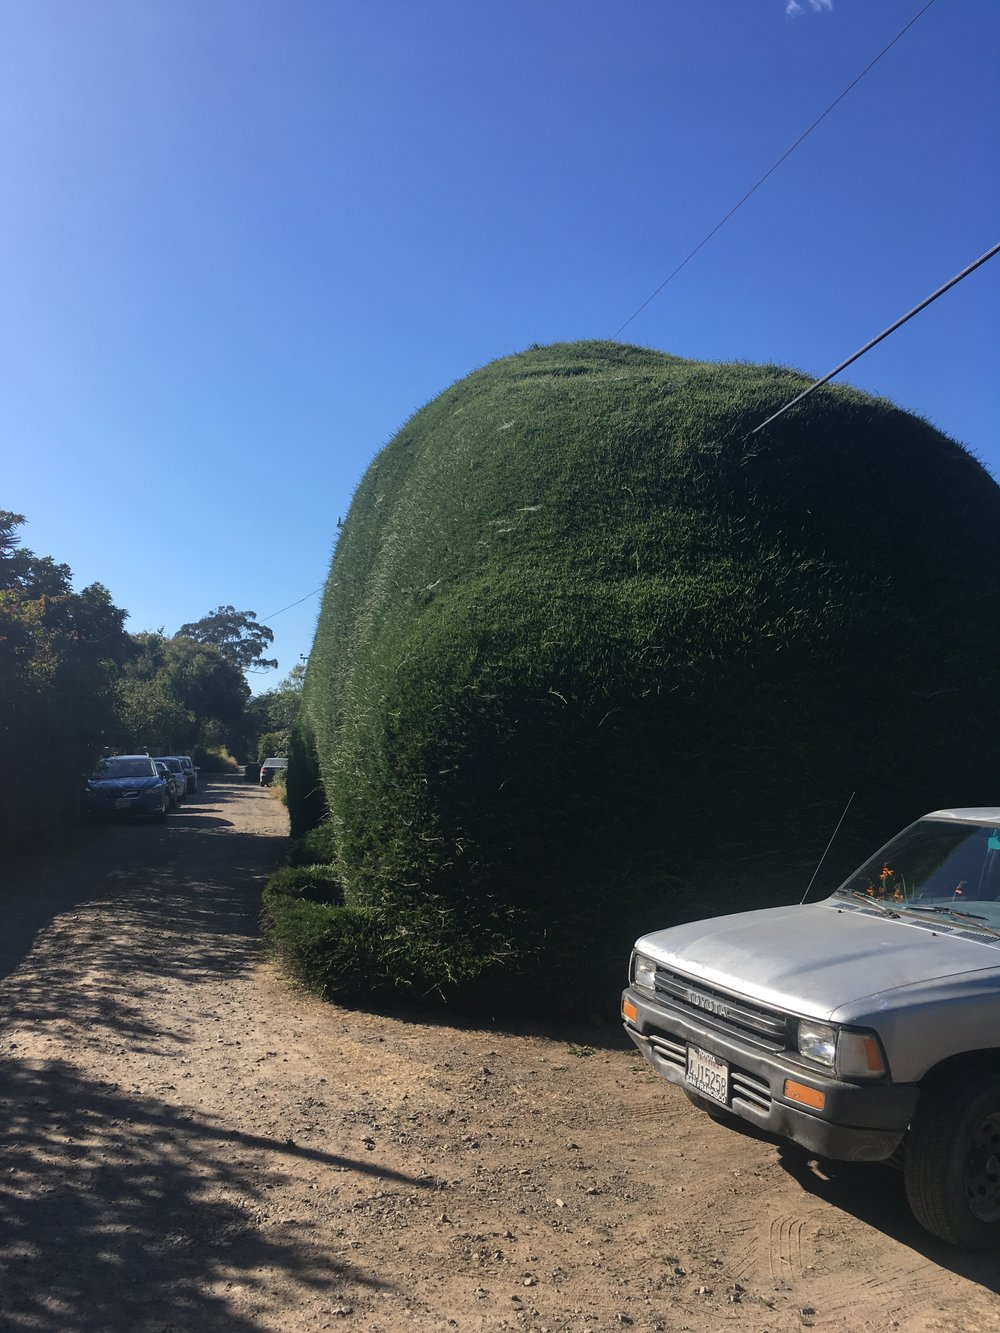 Manatee Bush Evergreen Street.jpg